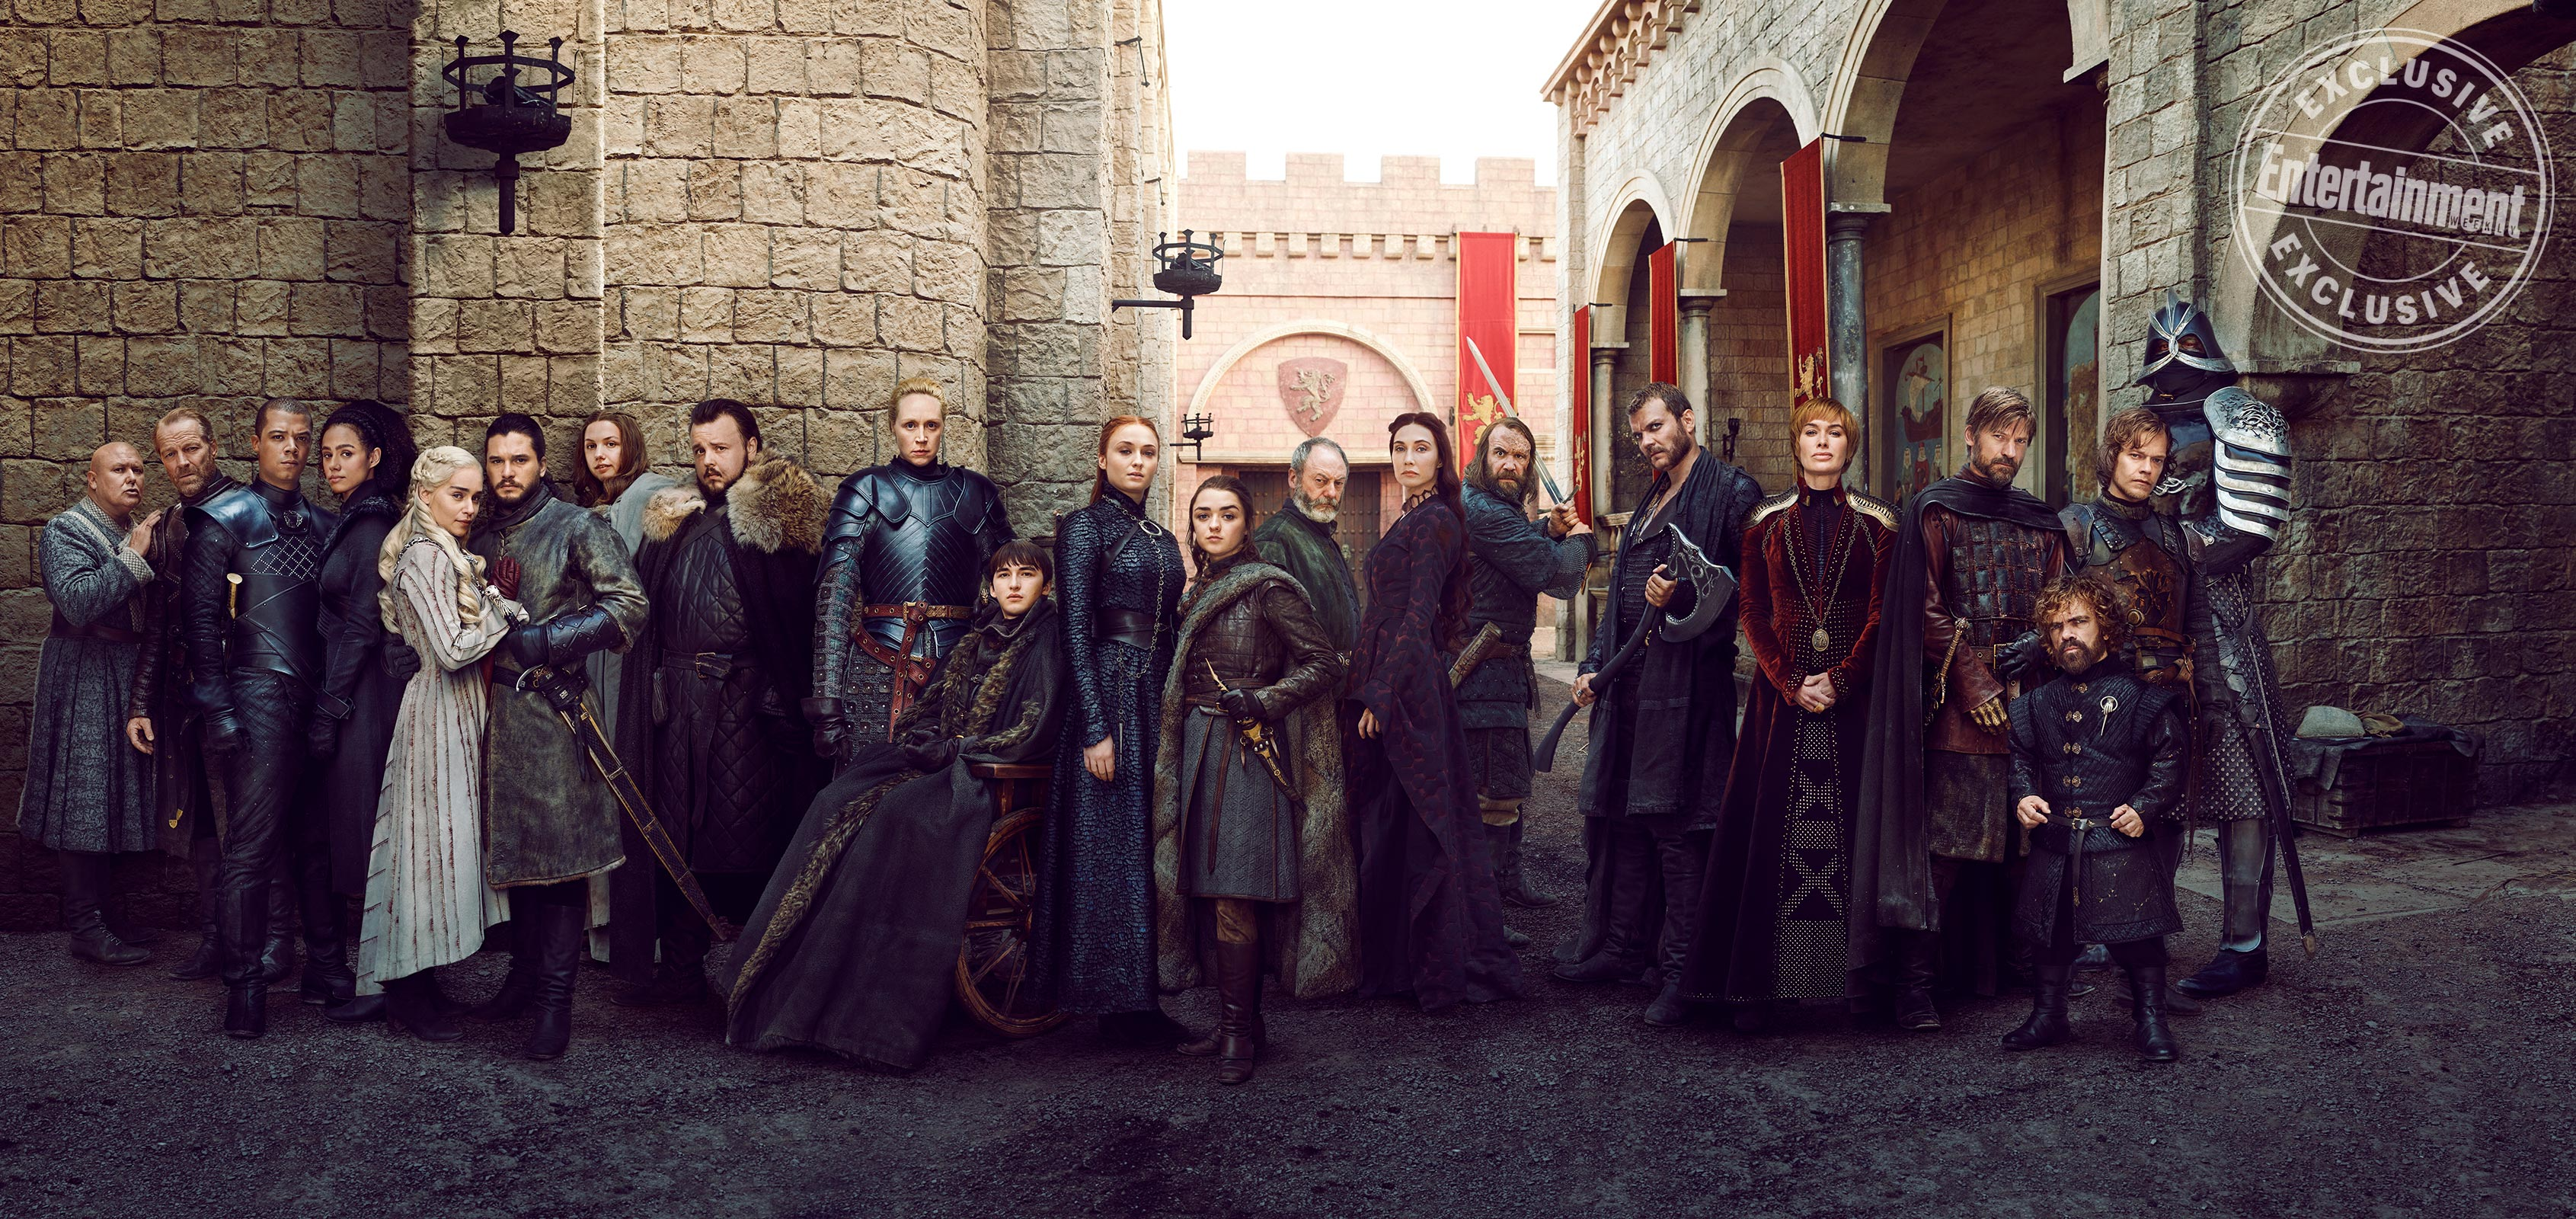 The main cast of Season 8 at the King's Landing set